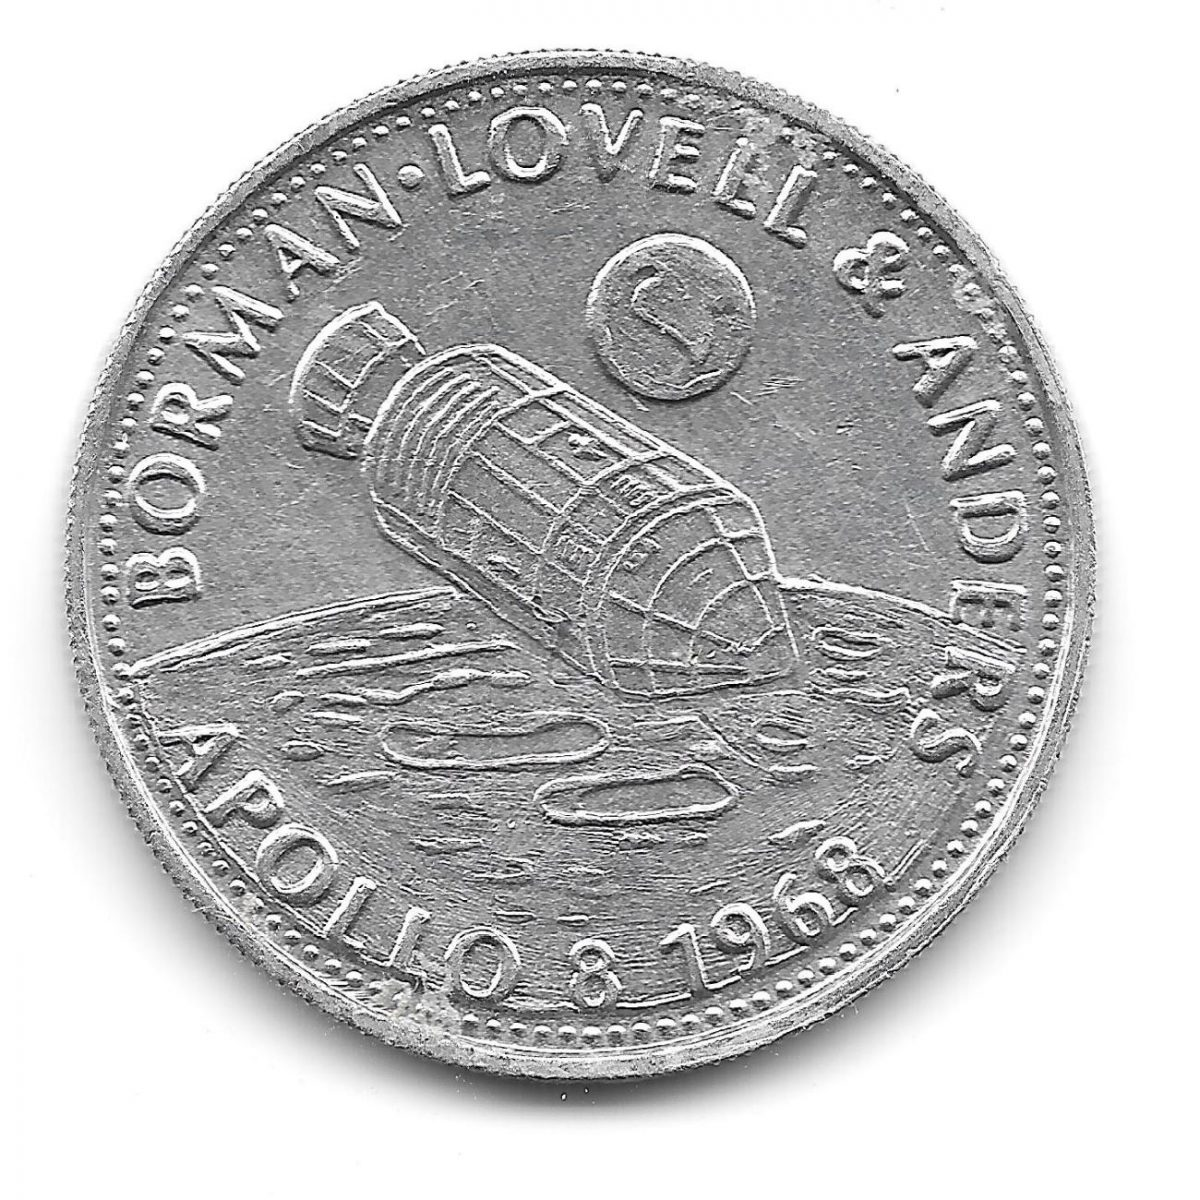 Shell, coins, Man in Flight, 1970s, Borman, Lovell and Anders, Apollo 8